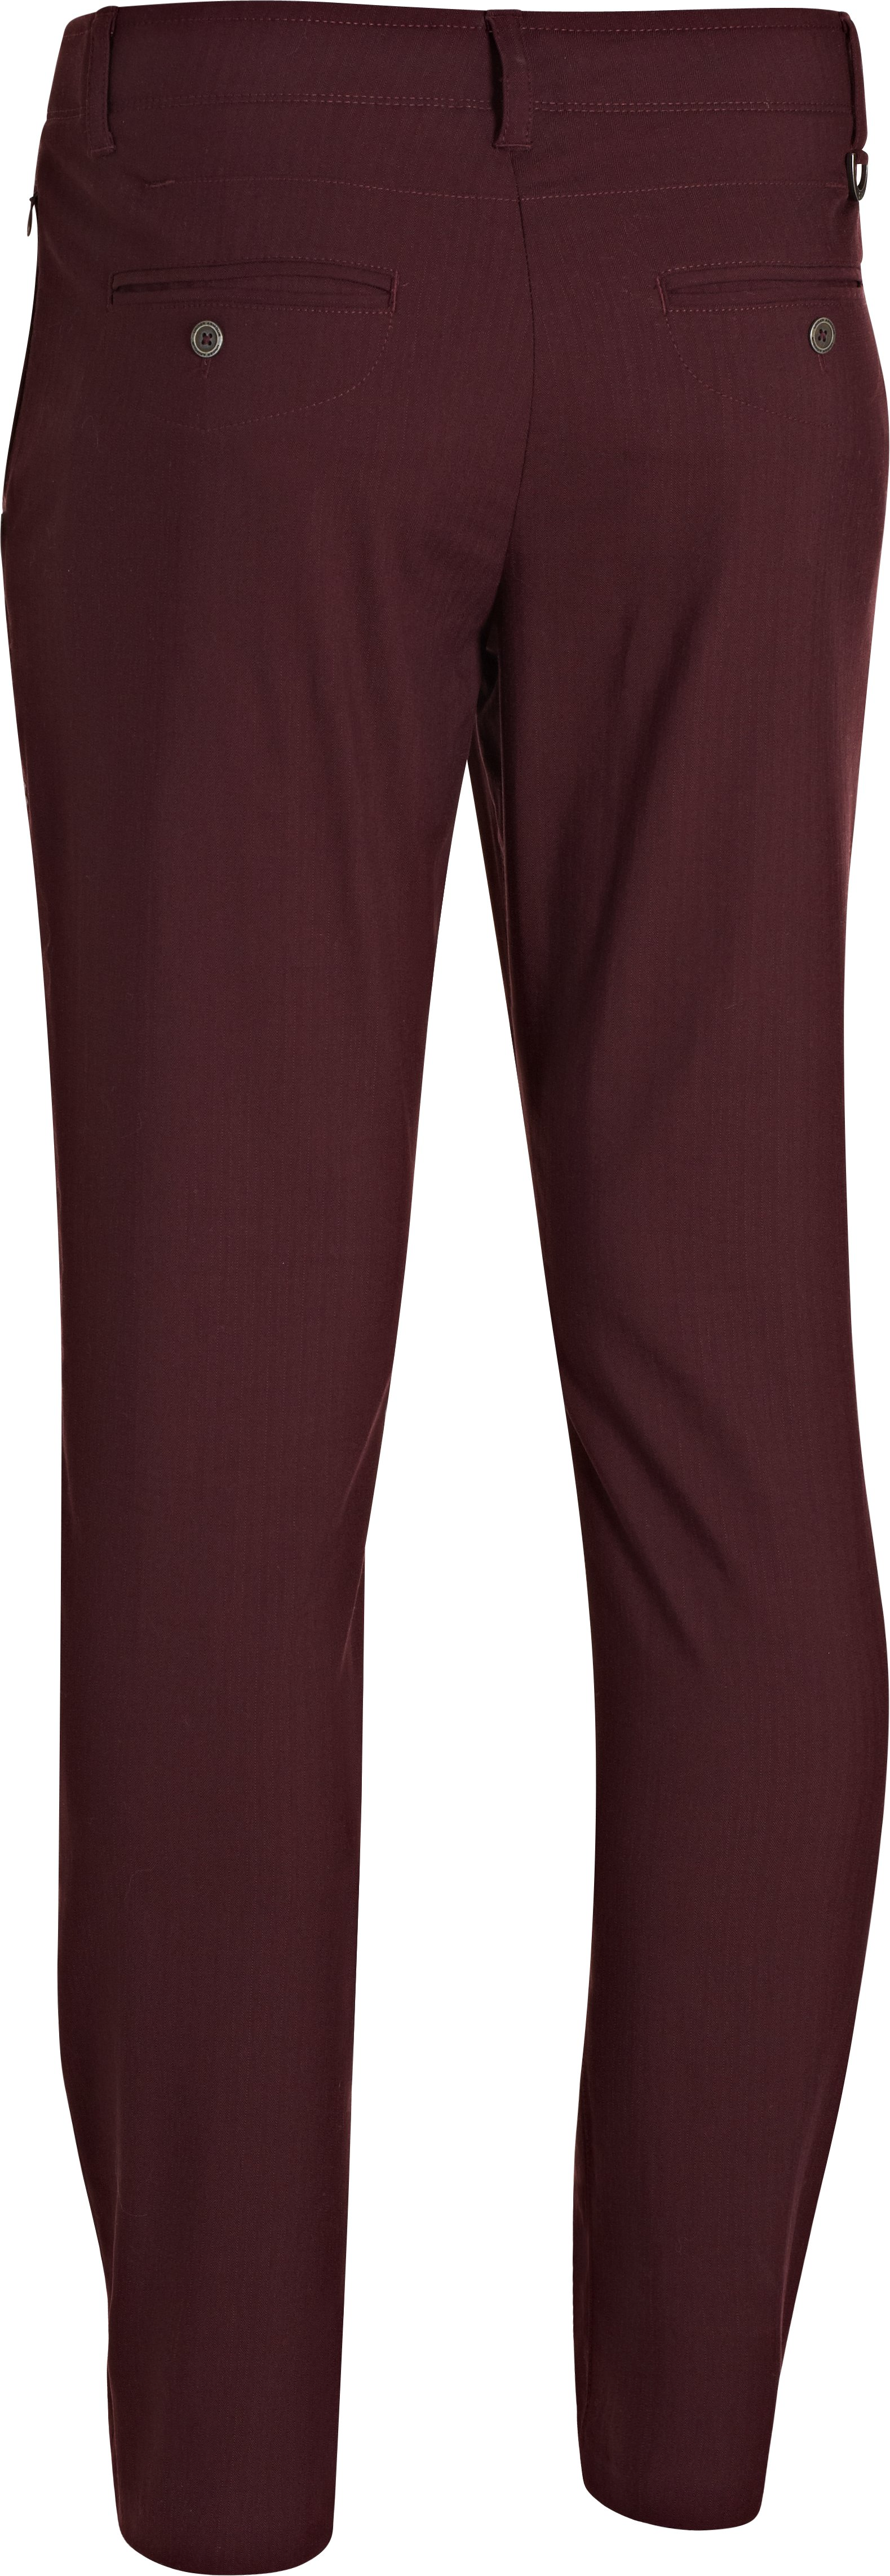 Men's UA Performance Chino – Tapered Leg, Ox Blood,